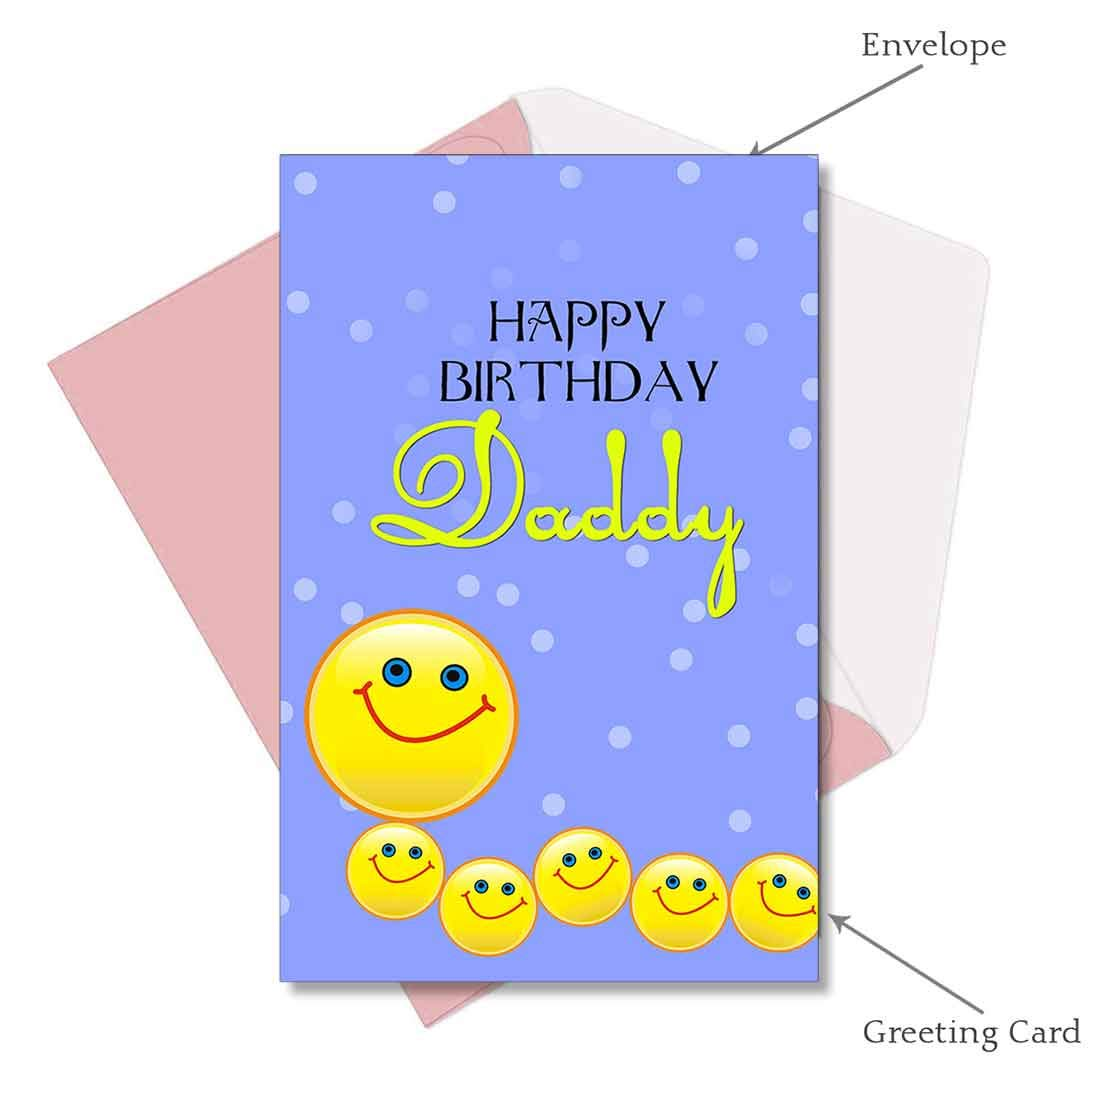 Happy Birthday Daddy Greeting Card Amazon.in Office Products